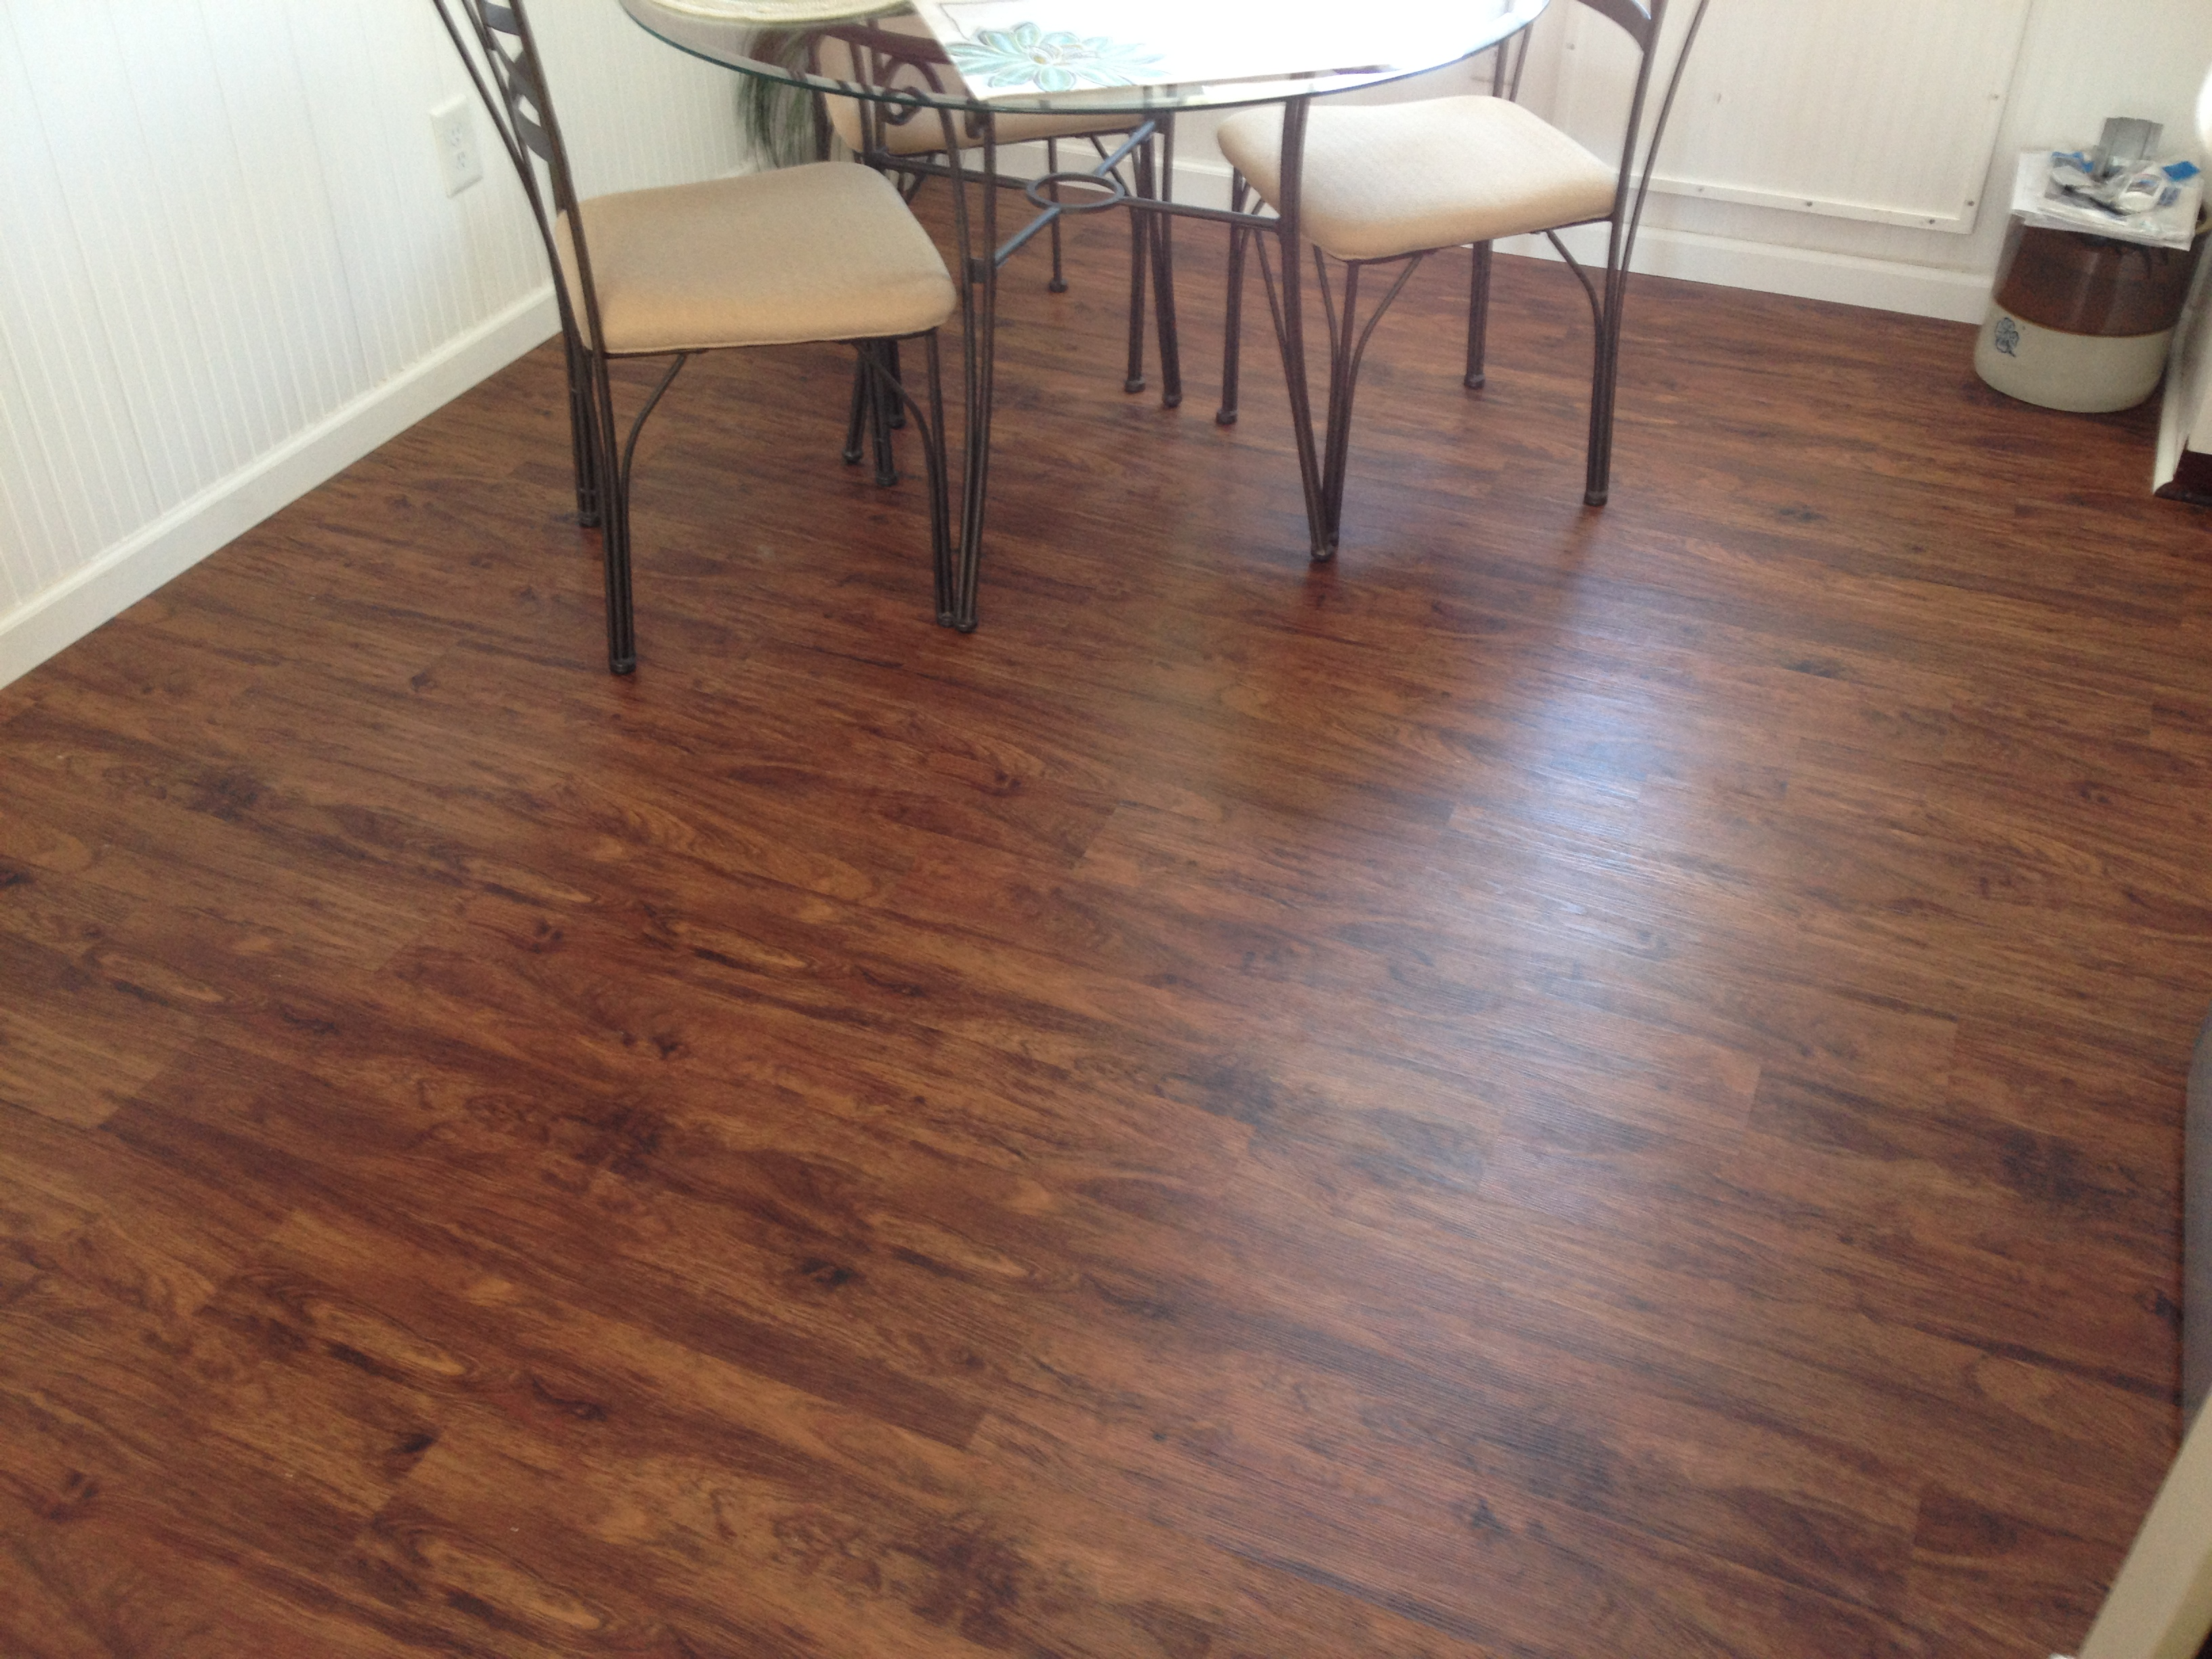 move over wood laminate flooring this vinyl plank flooring is the wave ...